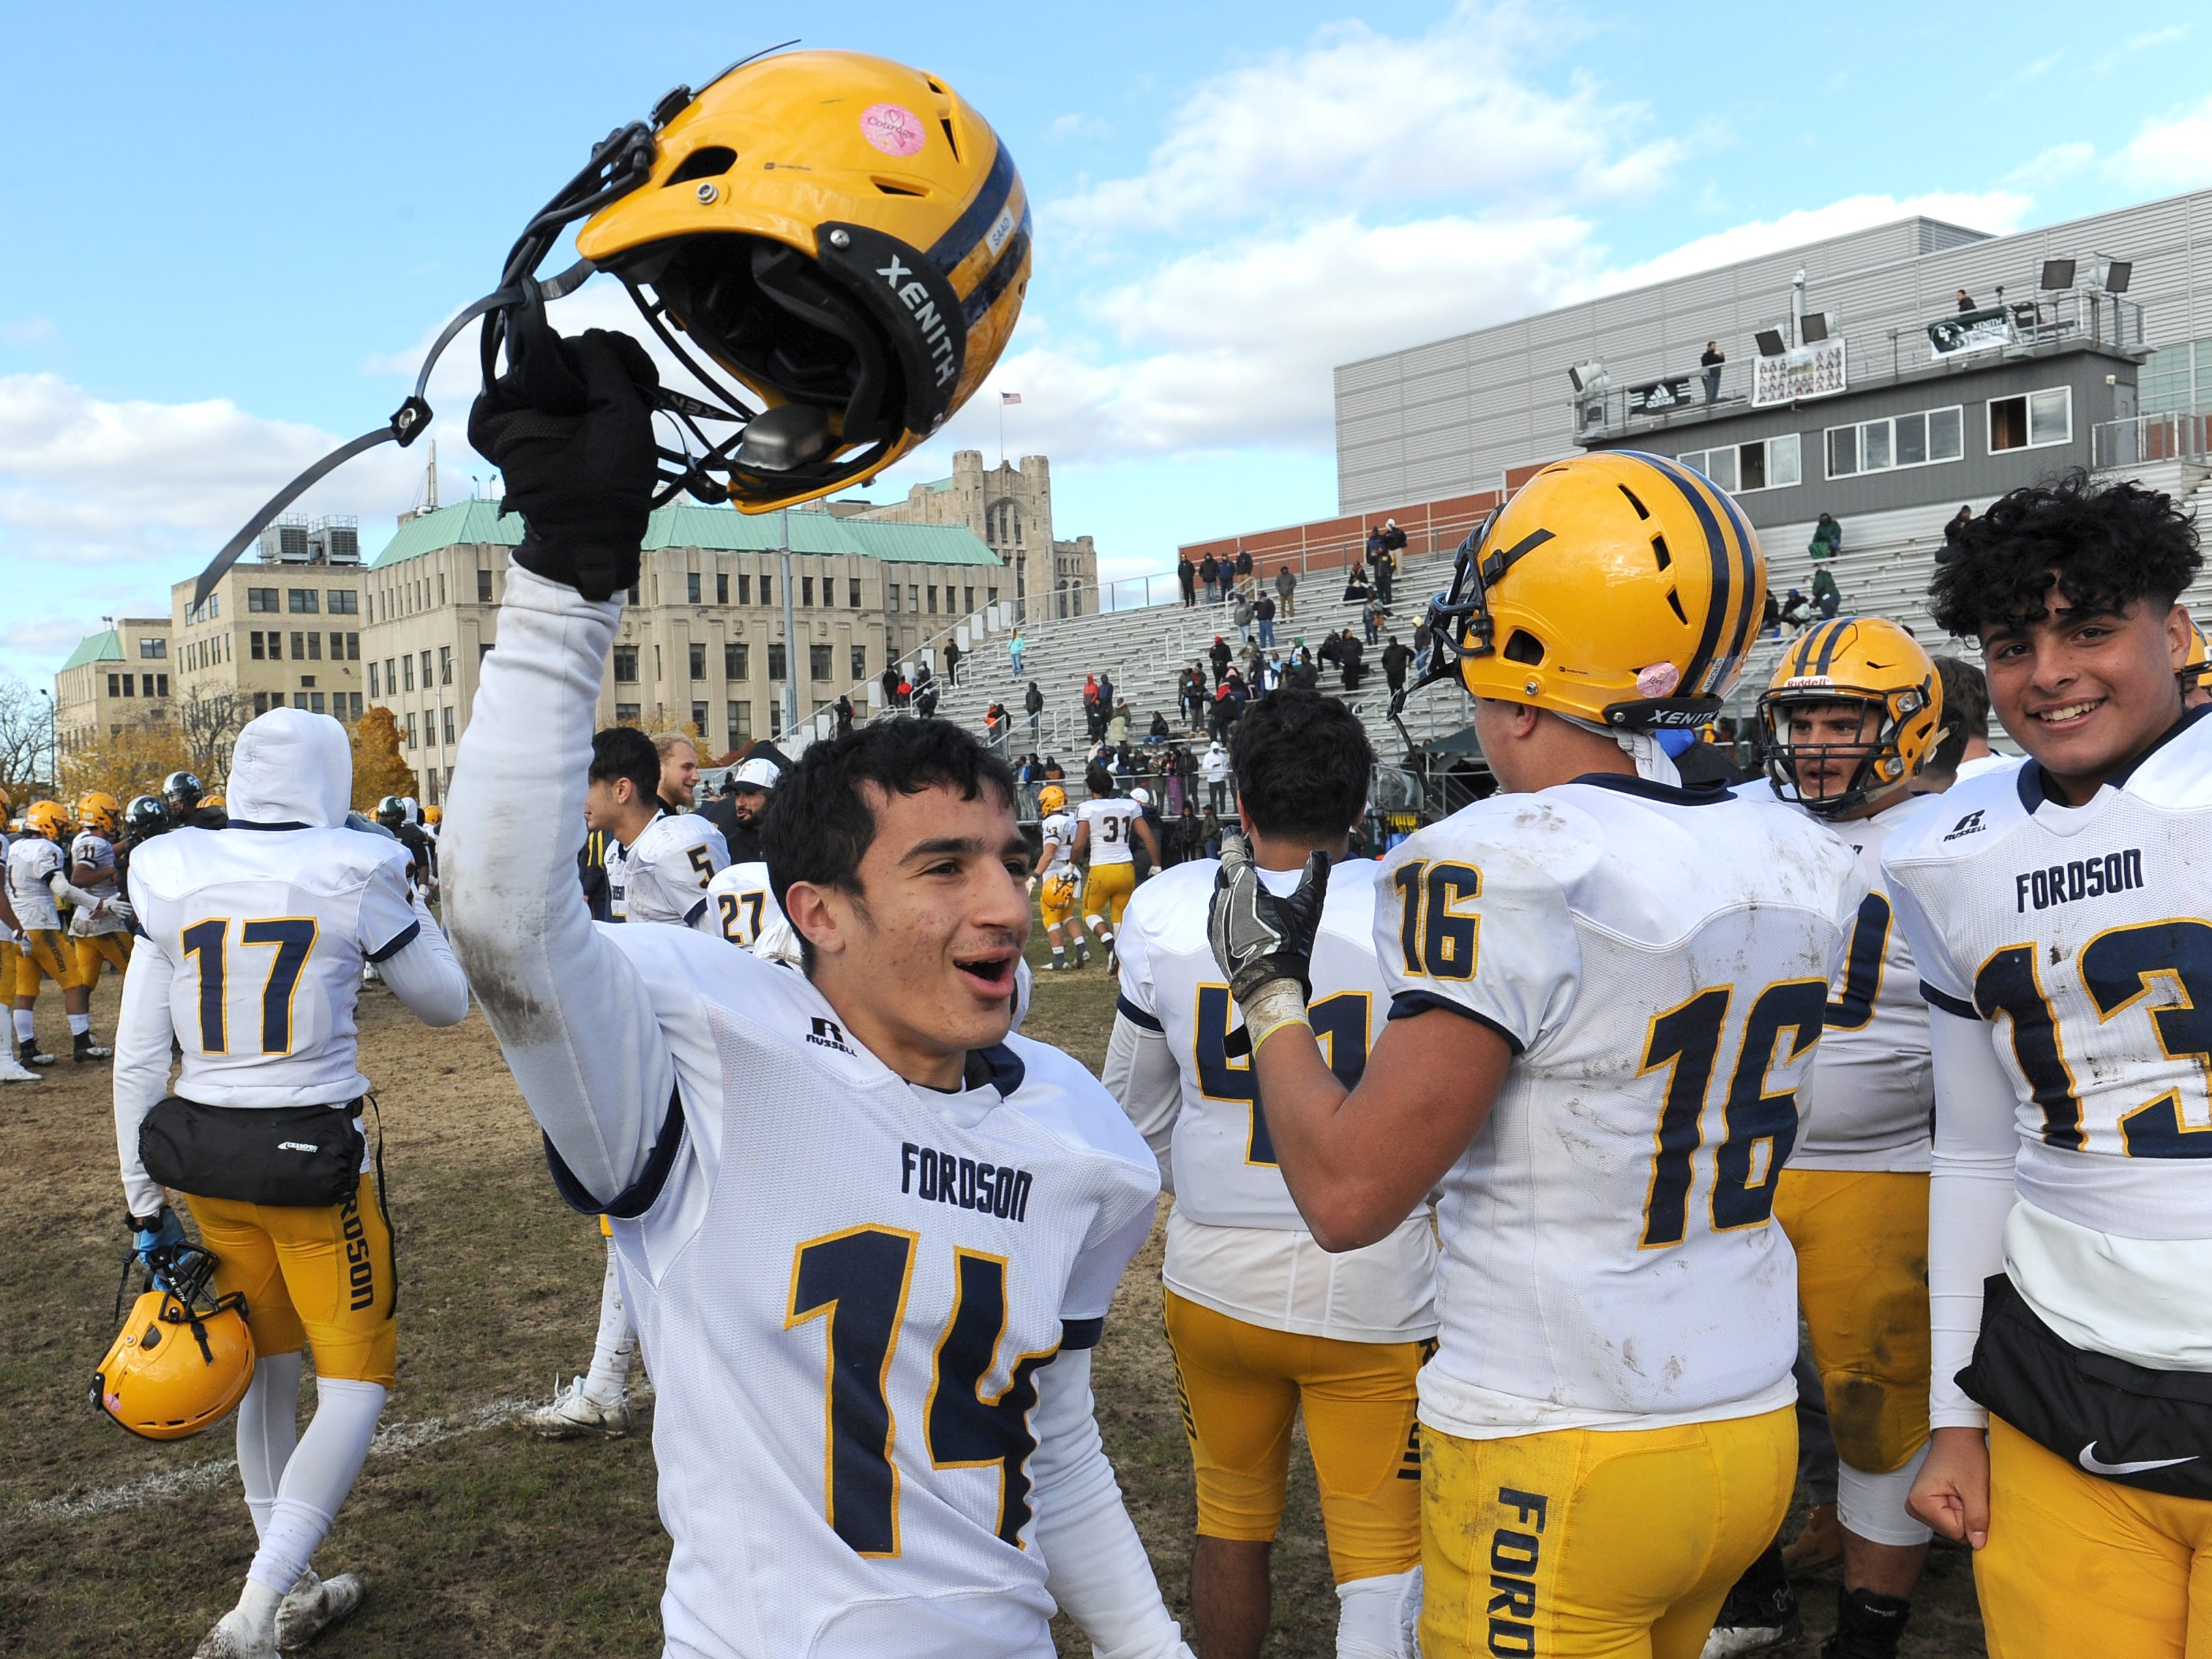 Dearborn Fordson High School's Ali Saad (14) celebrates the win over Cass Technical High School 41-14 on Saturday November 3, 2018.